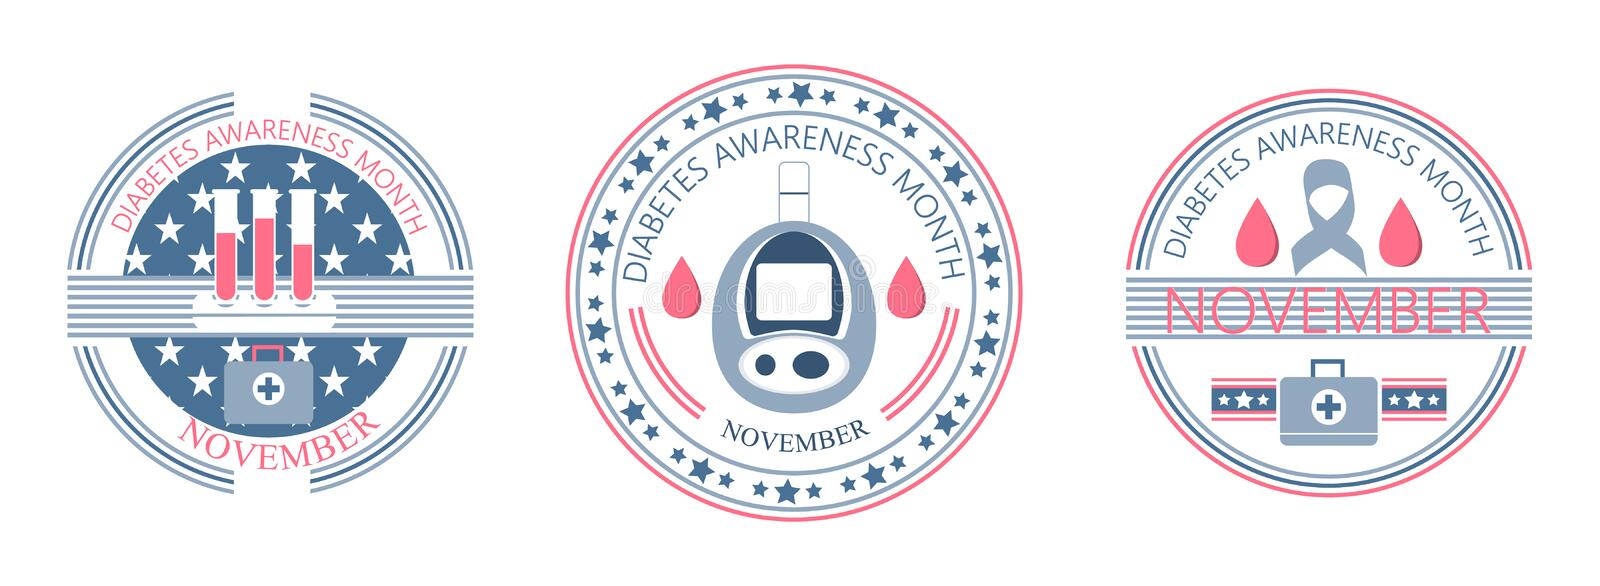 Mese di consapevolezza del diabete in USA a novembre National Health Care Event americano illustrazione vettoriale